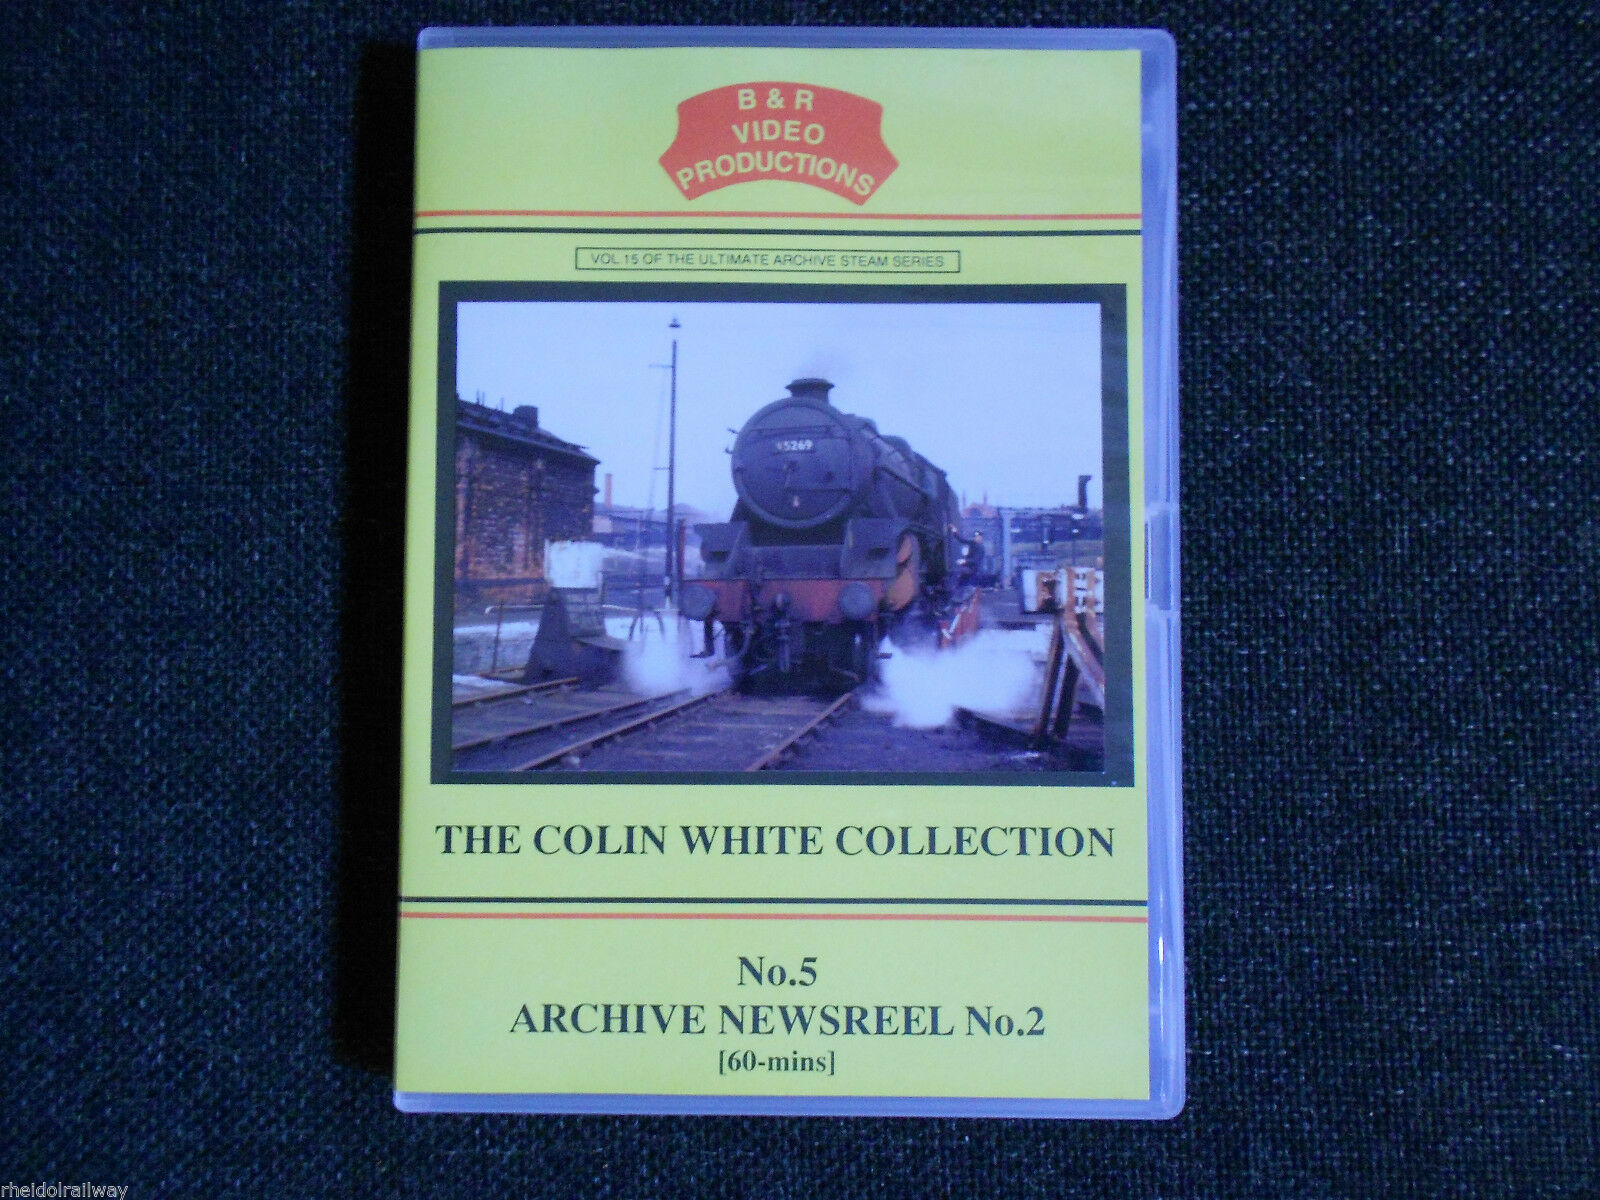 Waterloo, WD Gordon, Carnforth, No. 5 Archive Newsreel No.2, B & R Volume 15 DVD - The Vale of Rheidol Railway